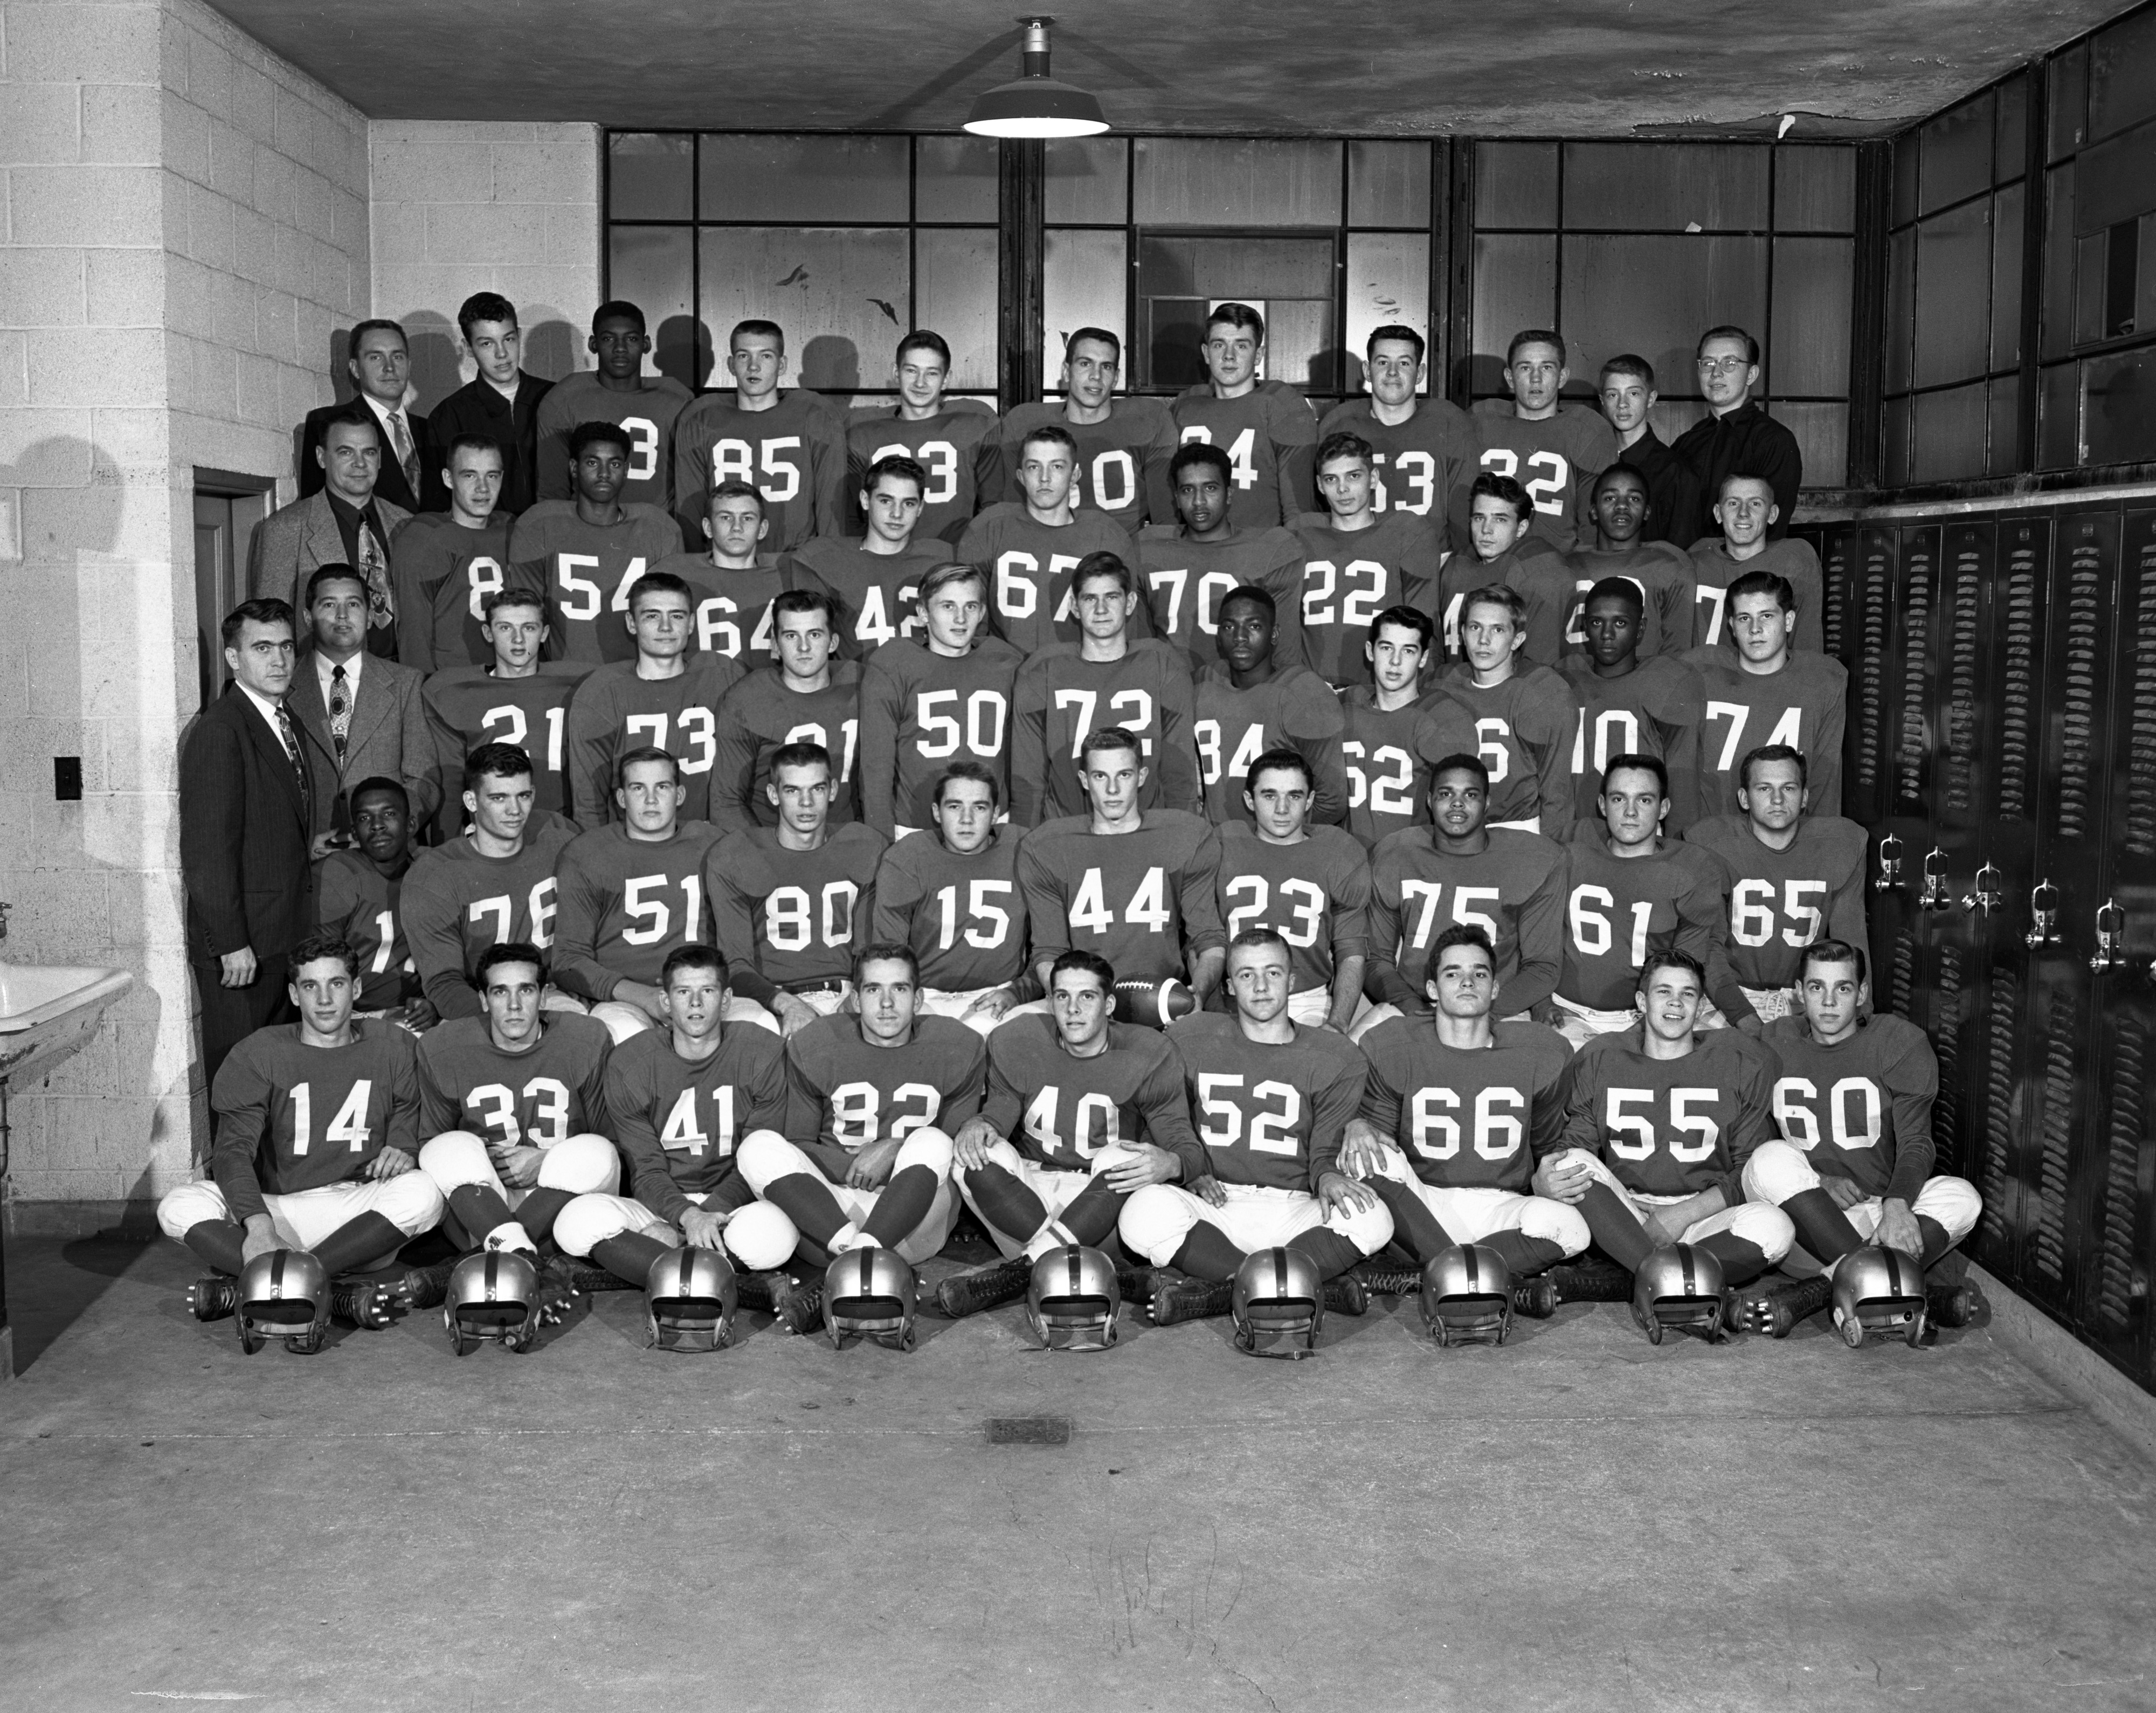 Ann Arbor High School Football Team Wins Six-A League Championship, October 1953 image